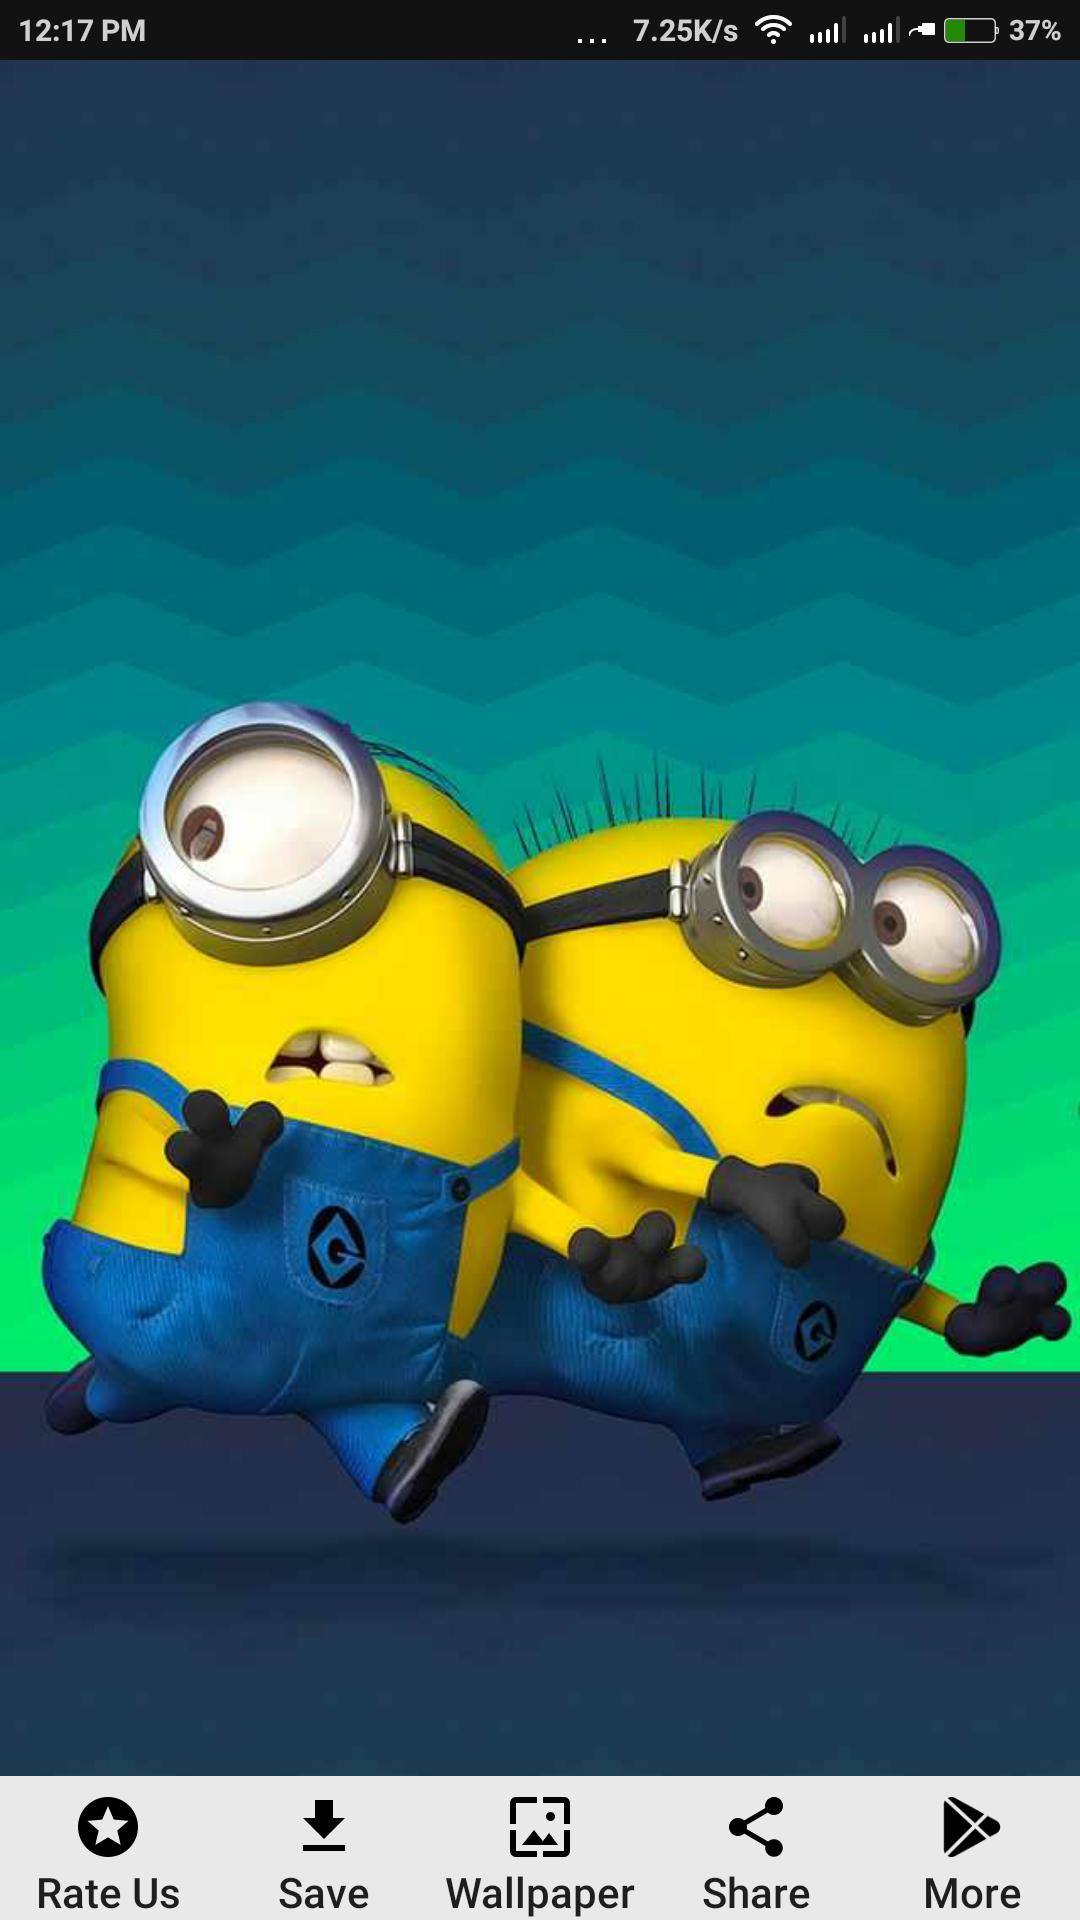 Despicable Me Wallpapers Cute Minions Wallpaper For